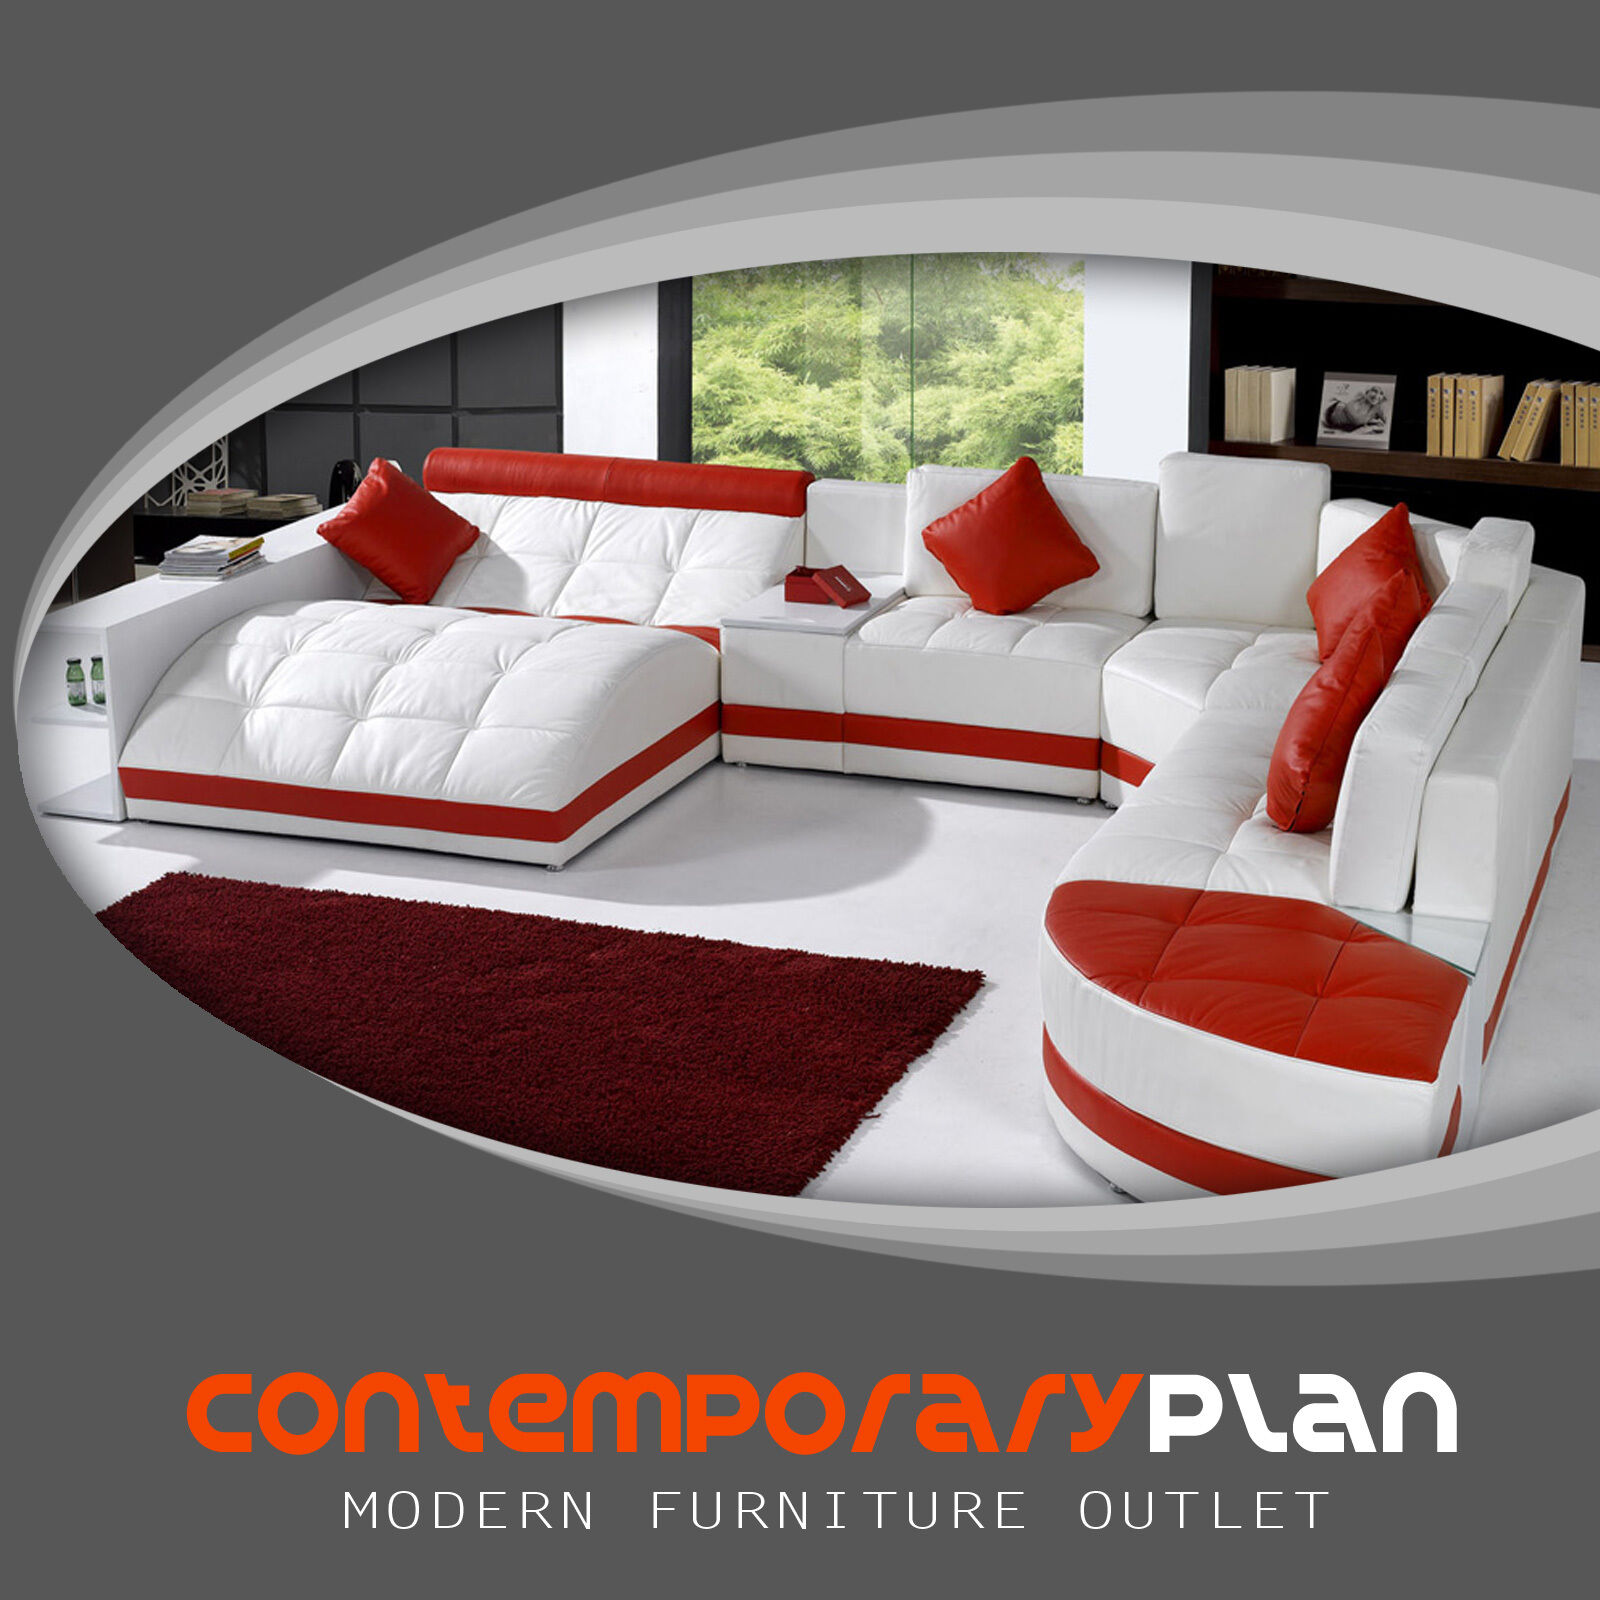 Miami Contemporary Leather Sectional Sofa Set - Curved Moder